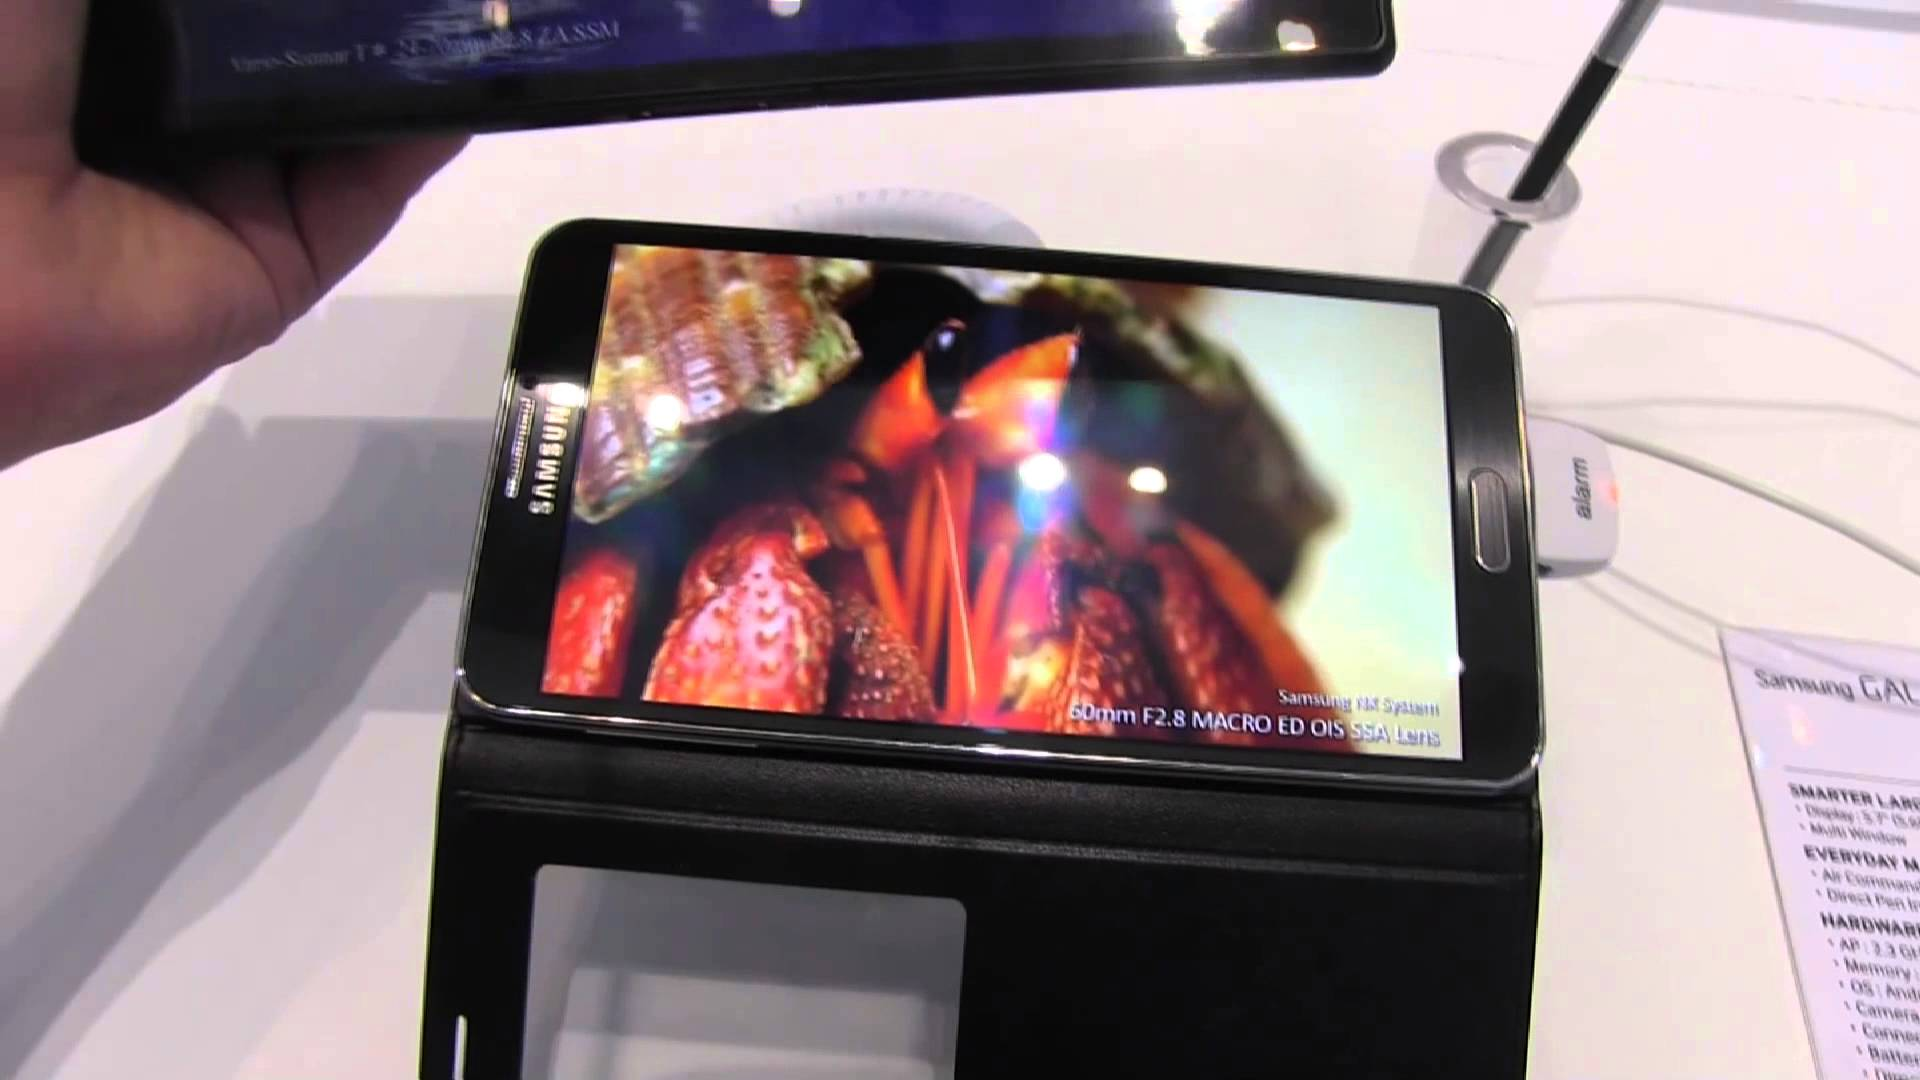 IFA Samsung Galaxy Note 3 vs. Sony Xperia Z Ultra